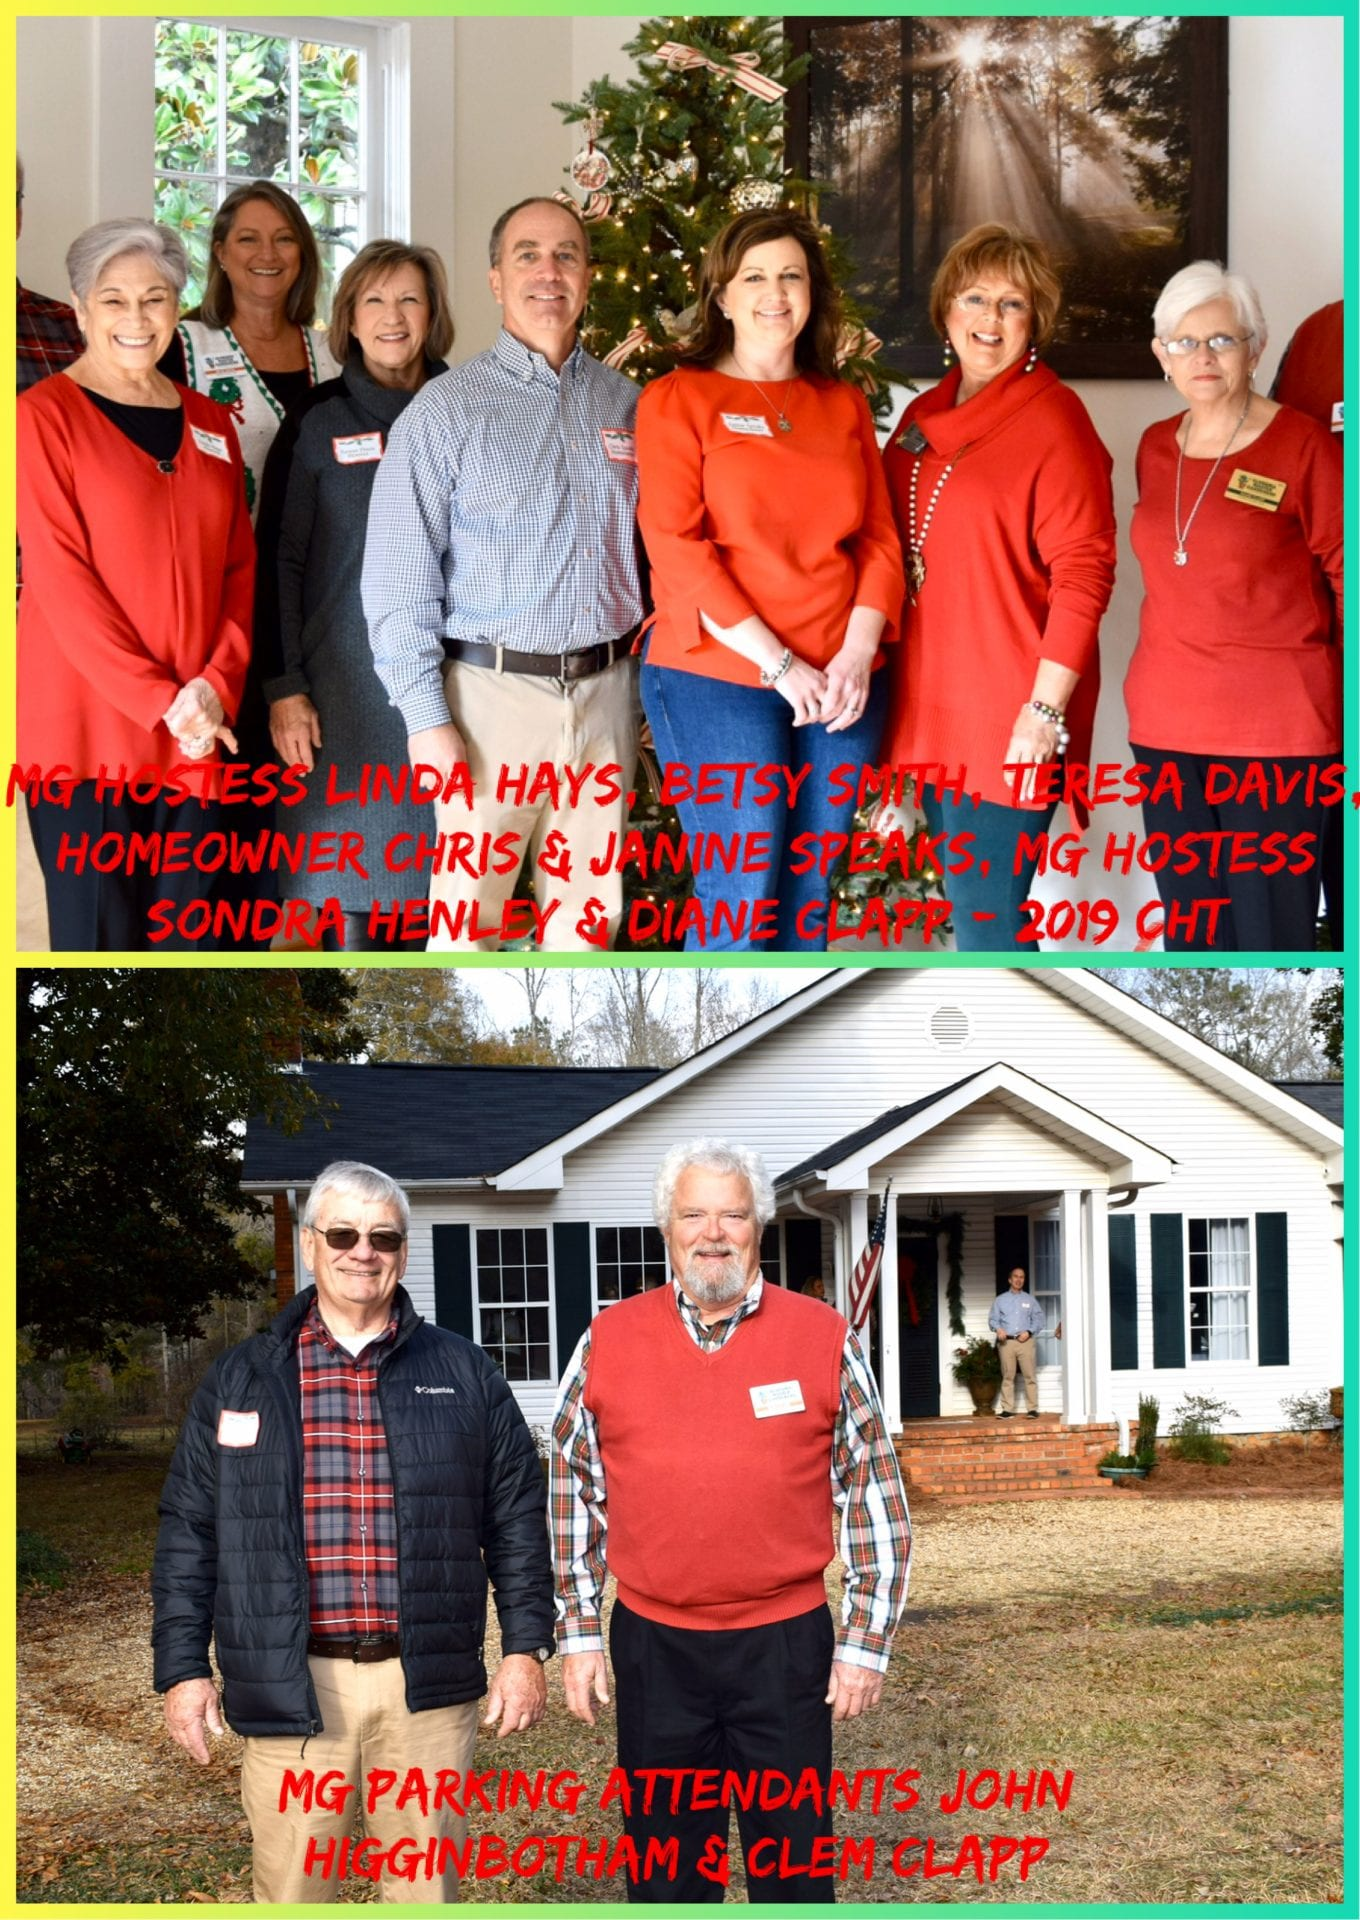 MG hostesses and parking attendants at Chris Speaks Home 2019 Christmas Home Tour